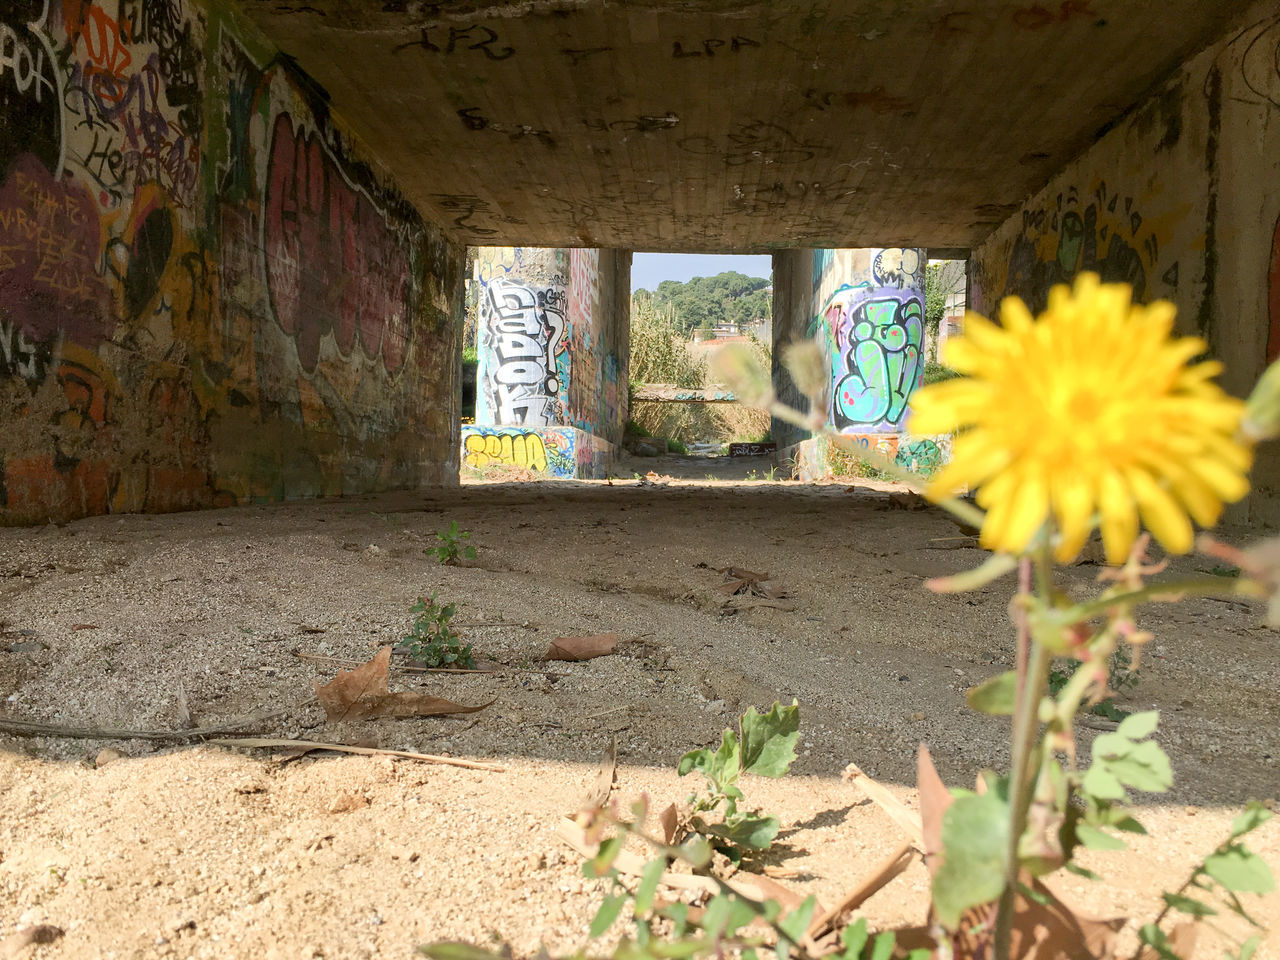 Abandoned Apartment Buildings Architecture Beach Bridge Built Structure Dandelion Drain Drainage Dry Bridge Flower Graffiti Light And Shadow Perspective Sunny